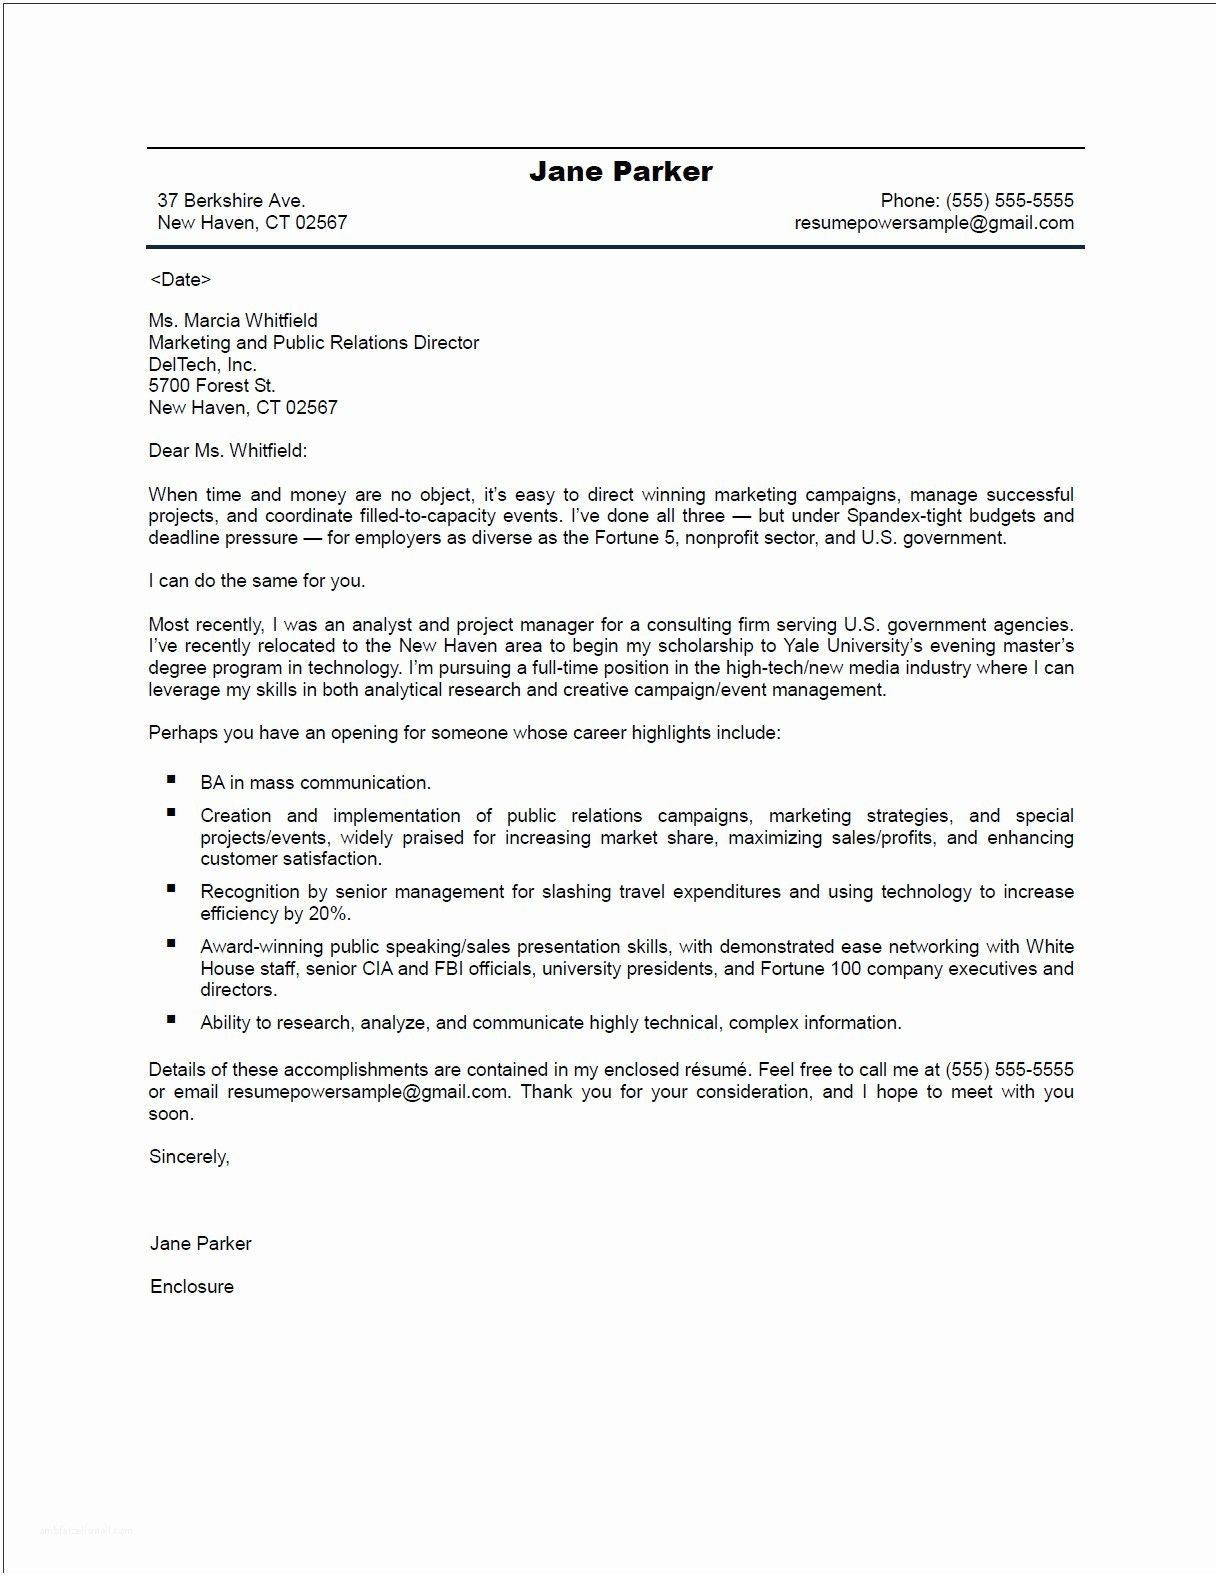 Sample Resume Cover Letter Examples 25 Sample Resume Cover Letter Sample Resume Cover Letter Sample